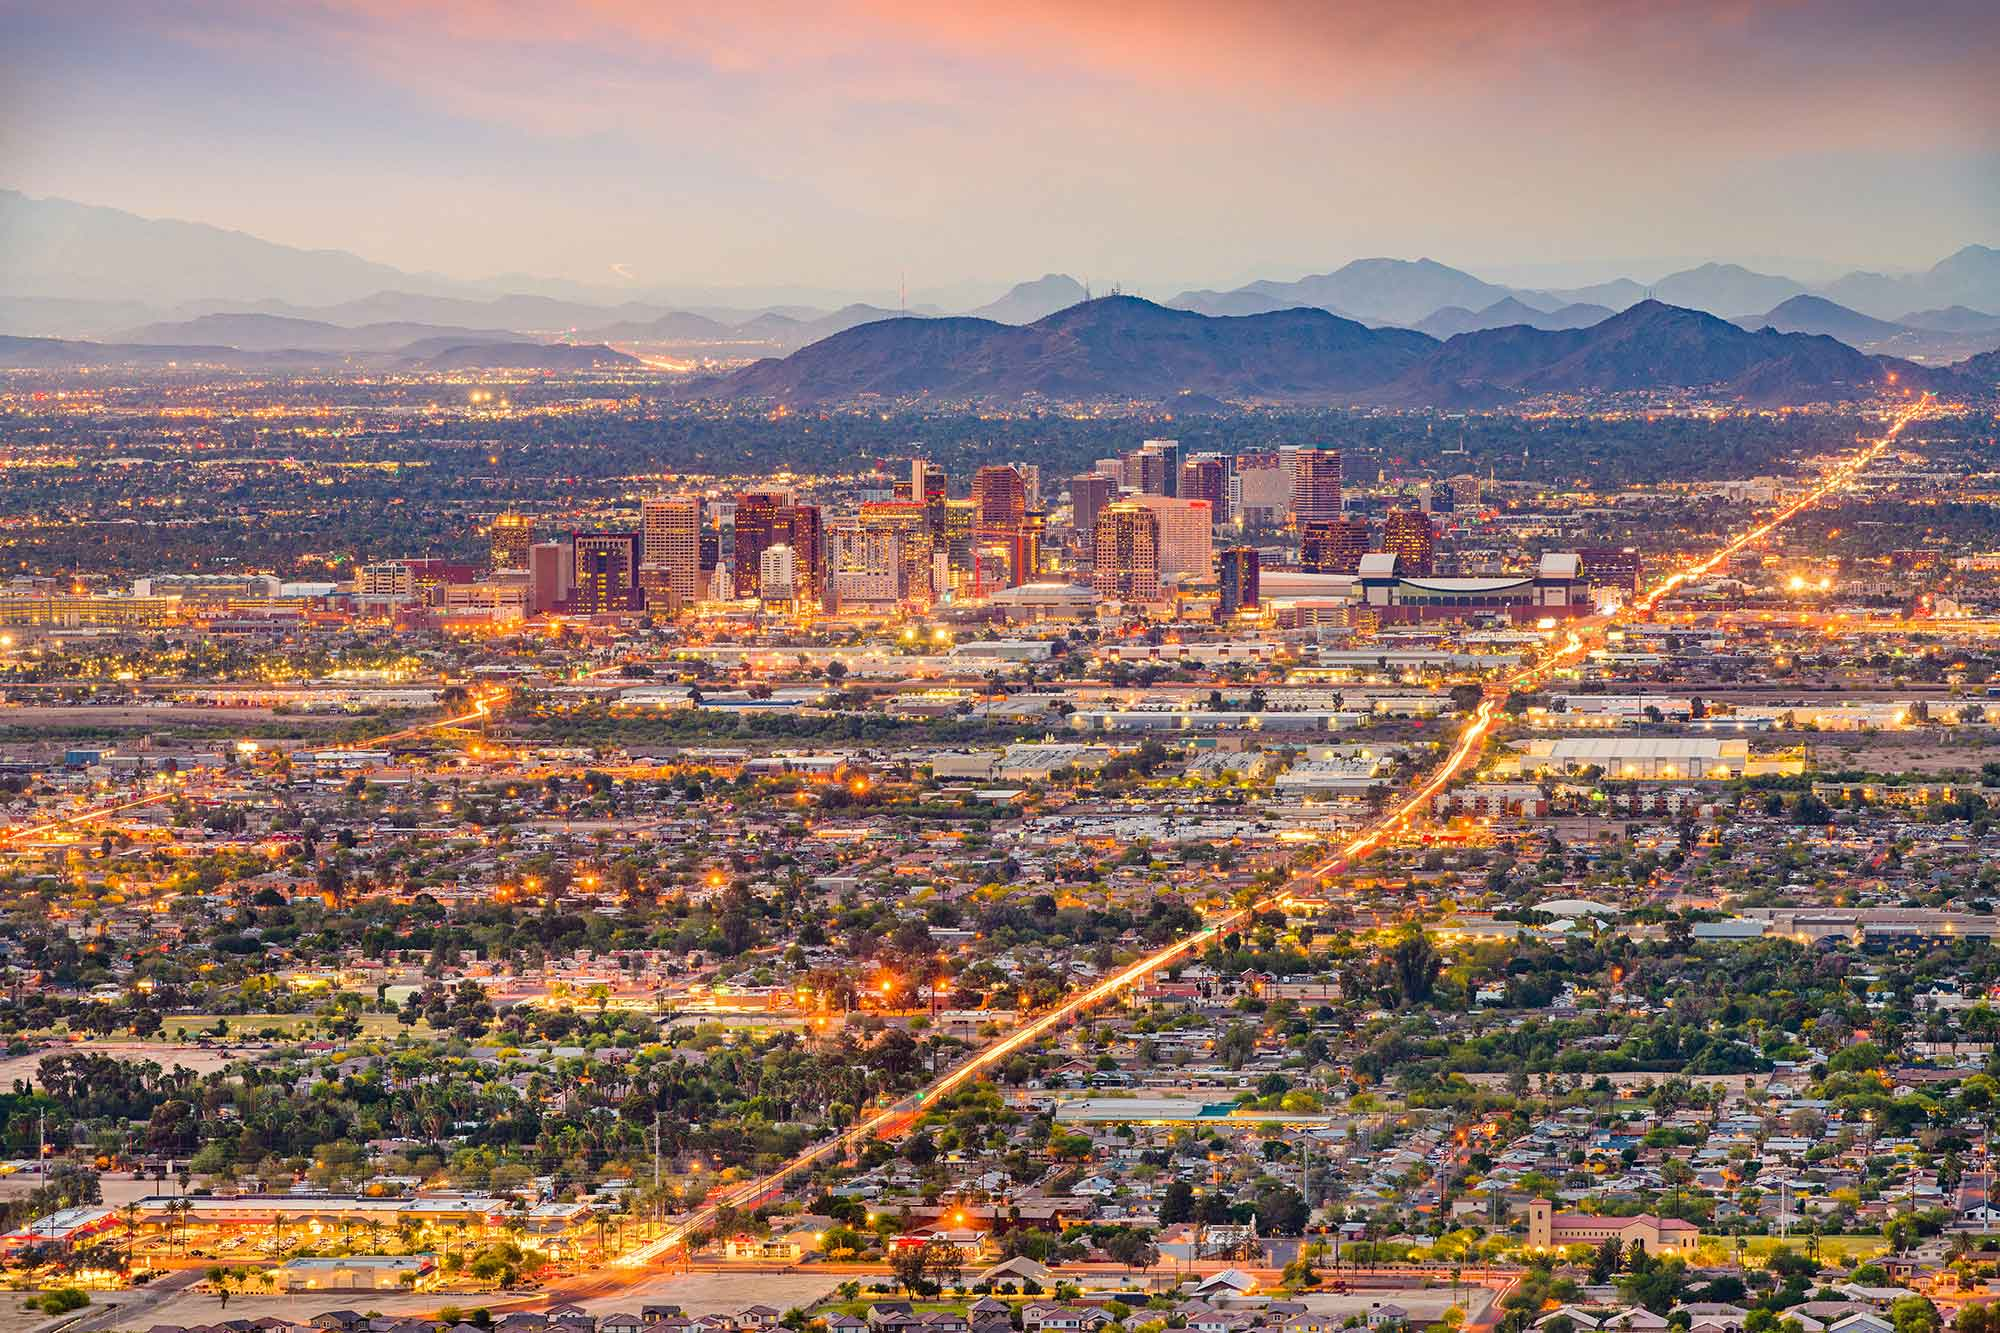 A view of the Phoenix skyline.